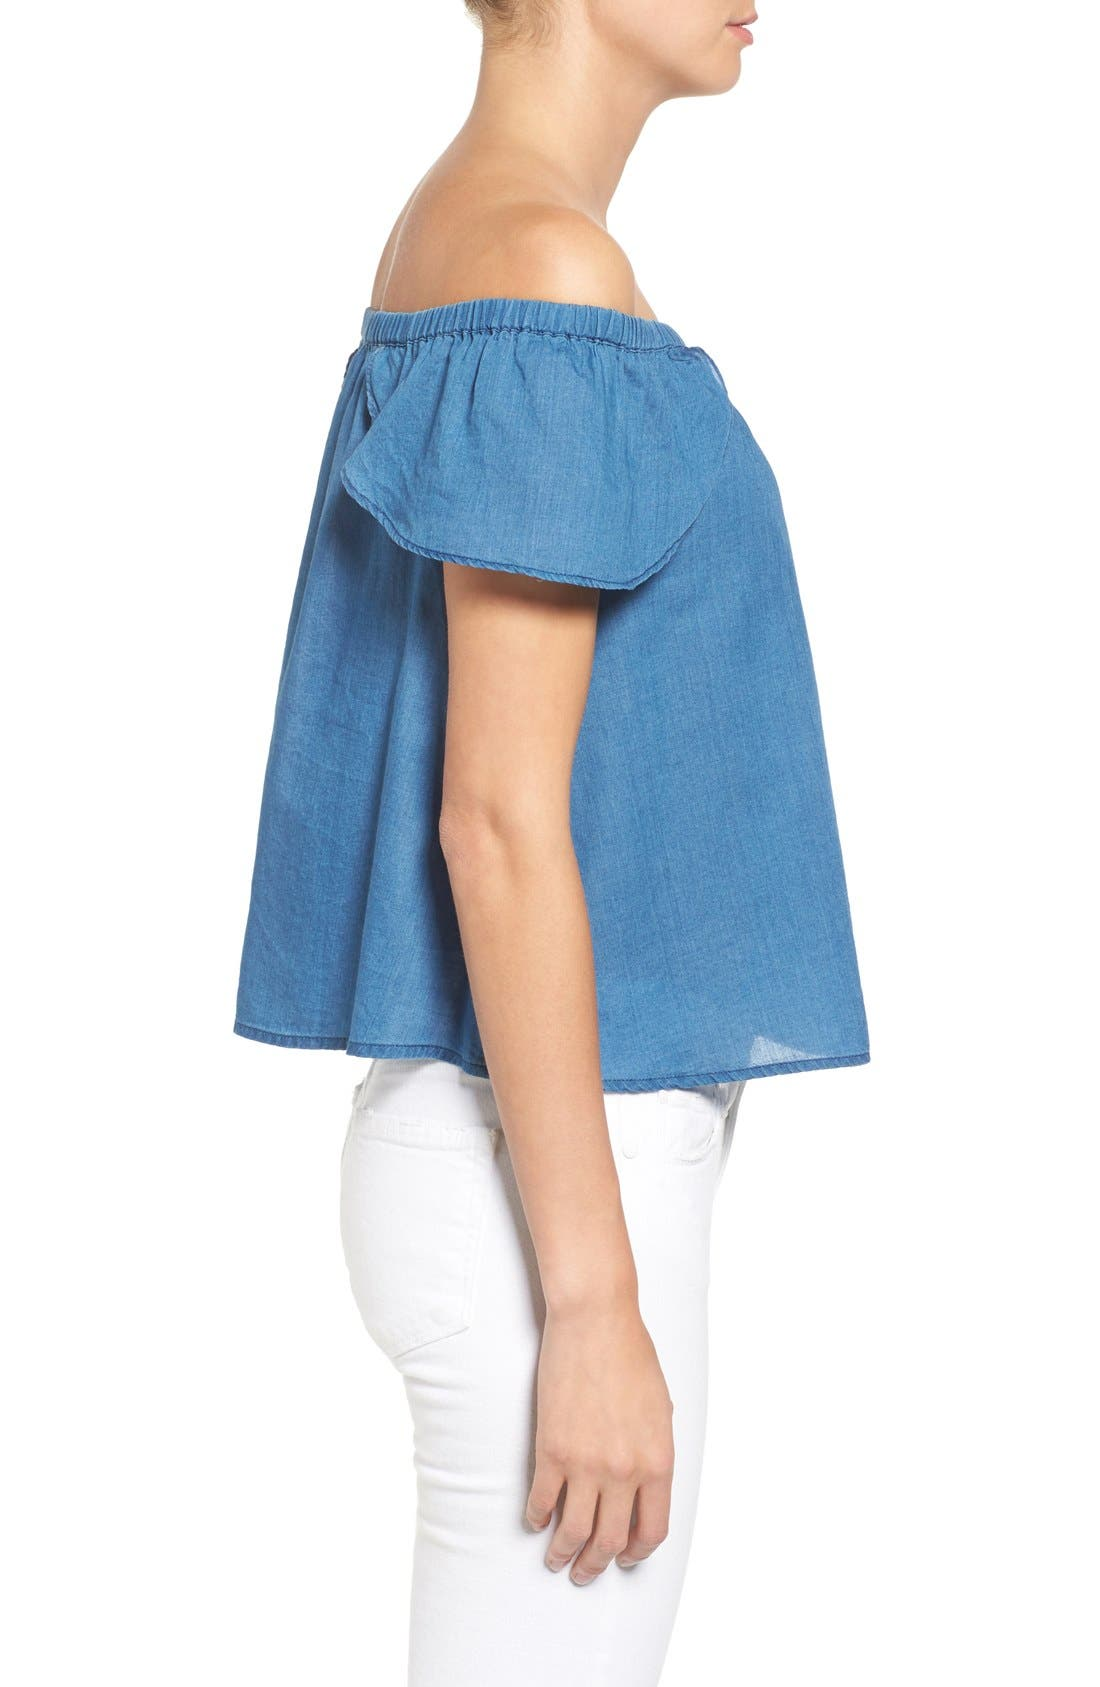 MADEWELL,                             Off the Shoulder Cotton Top,                             Alternate thumbnail 4, color,                             400